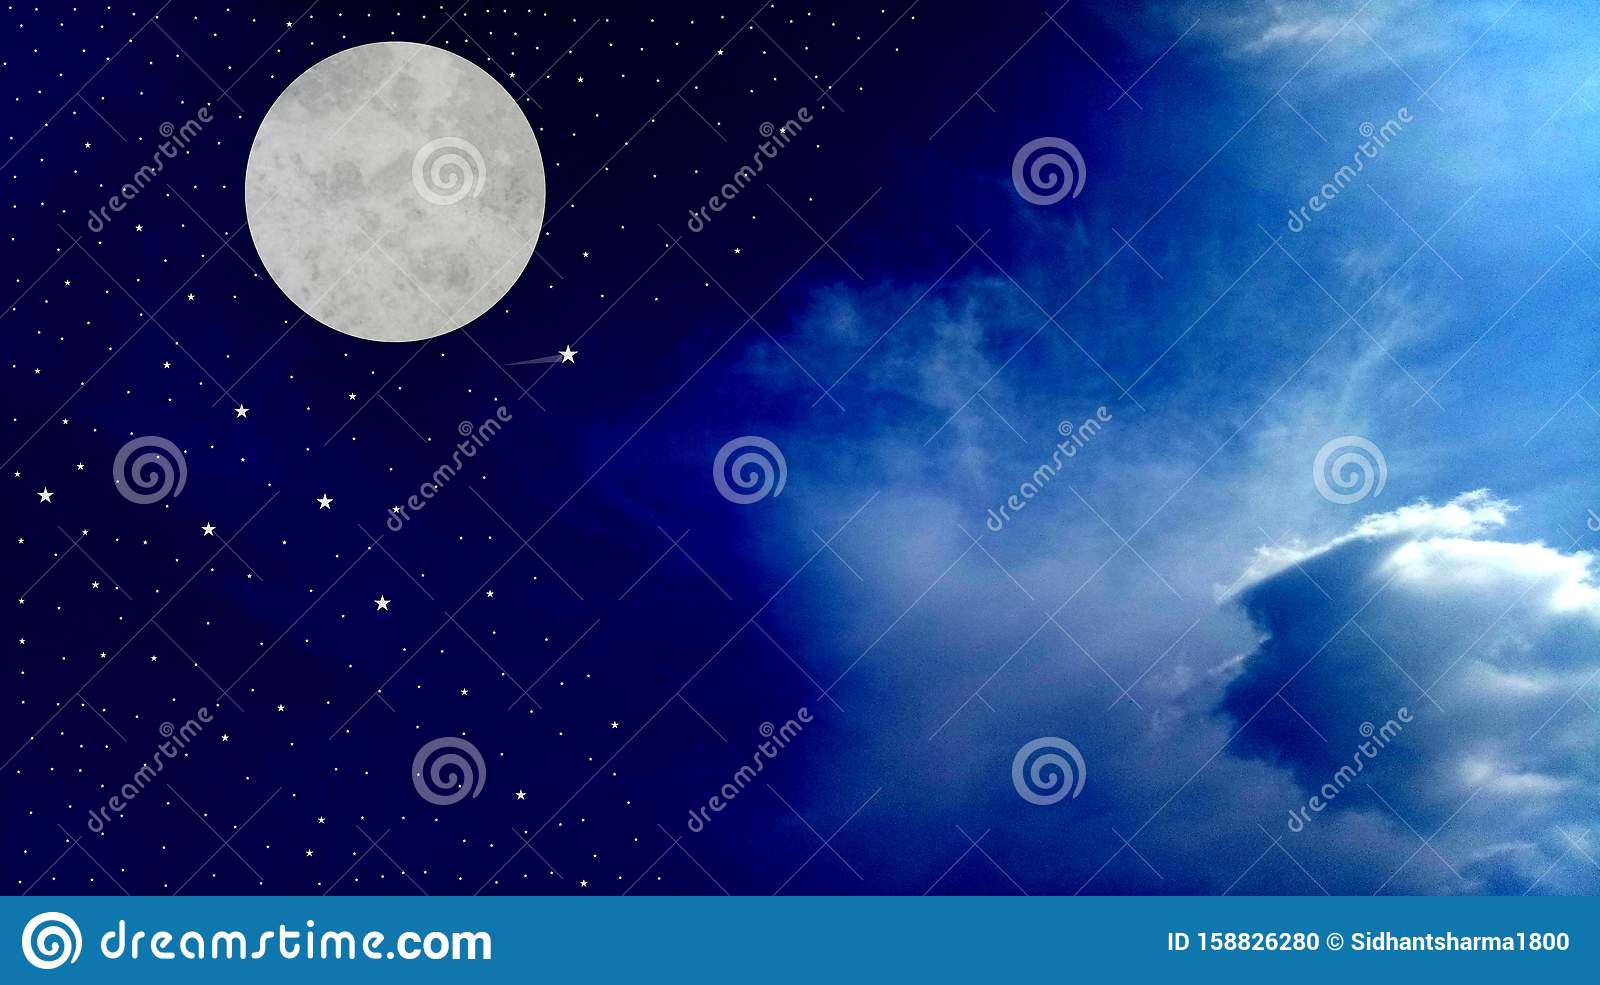 Full Moon Night Sky with clouds beautiful shinning stars beautiful view vector illustration.